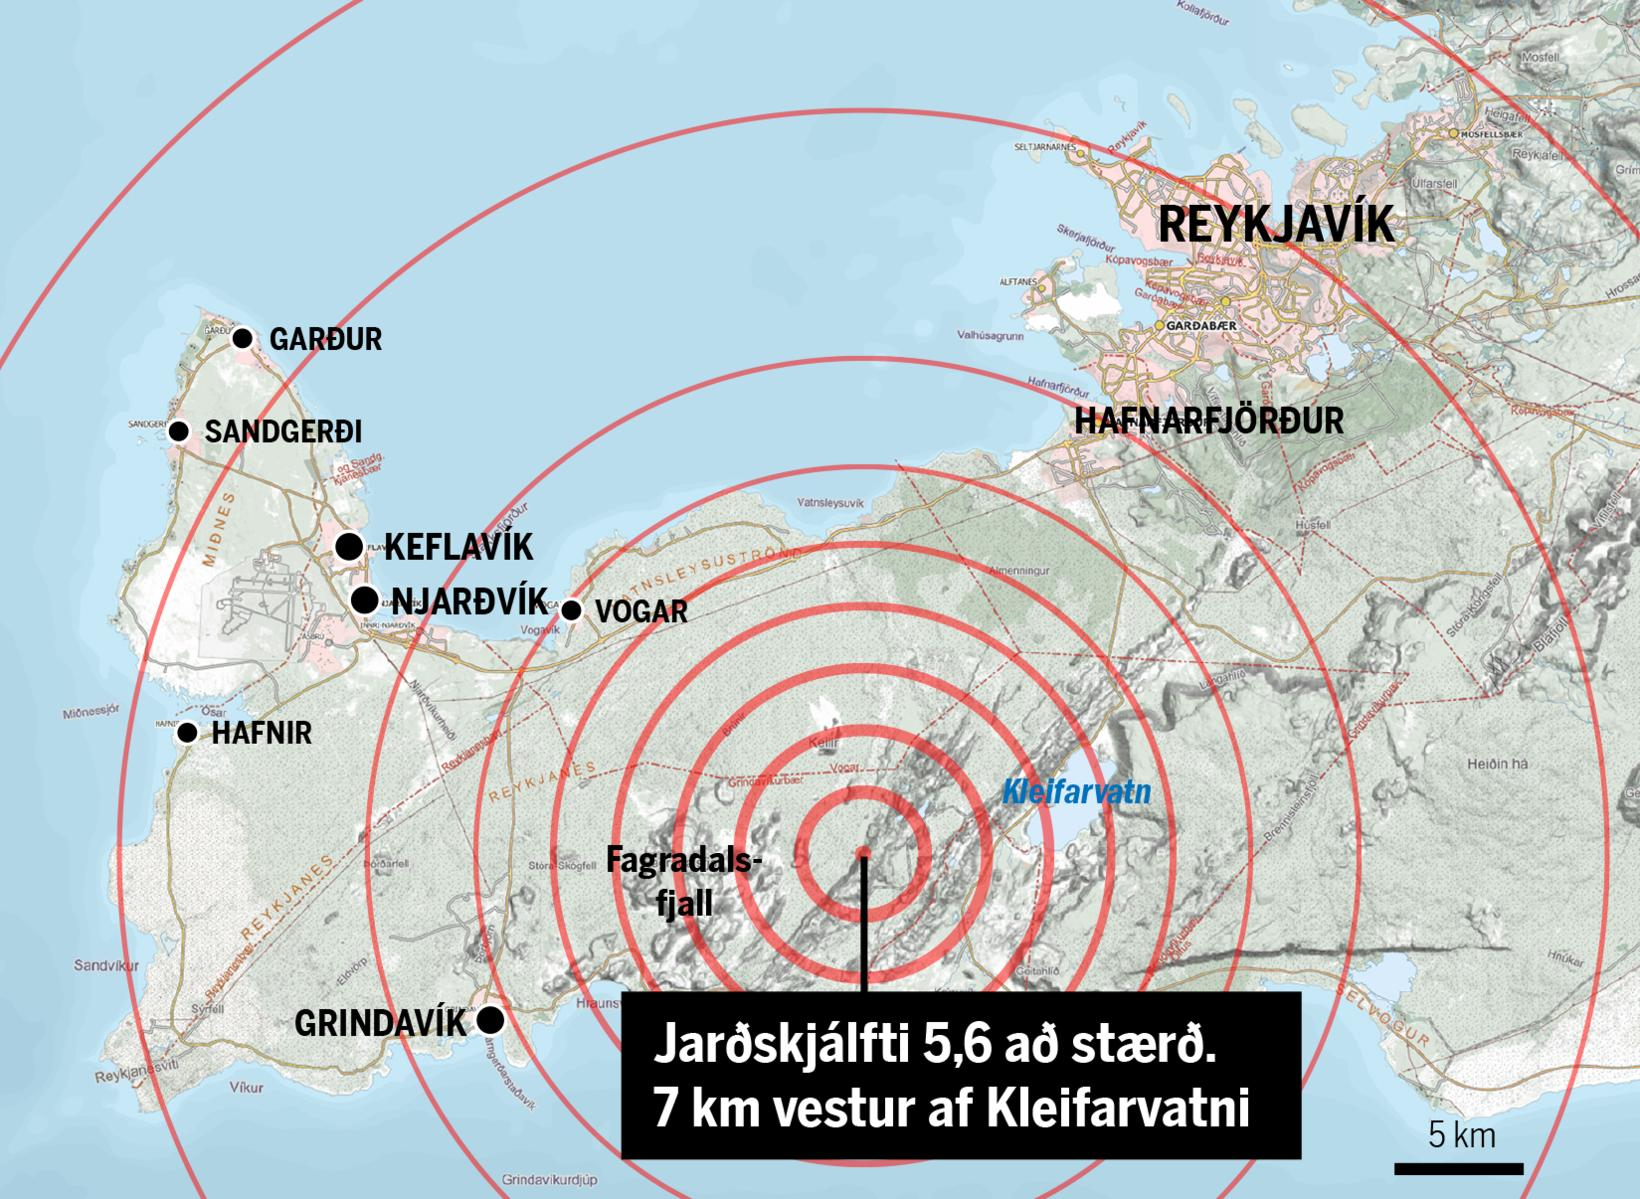 The map shows the source of the earthquake, 7 km …